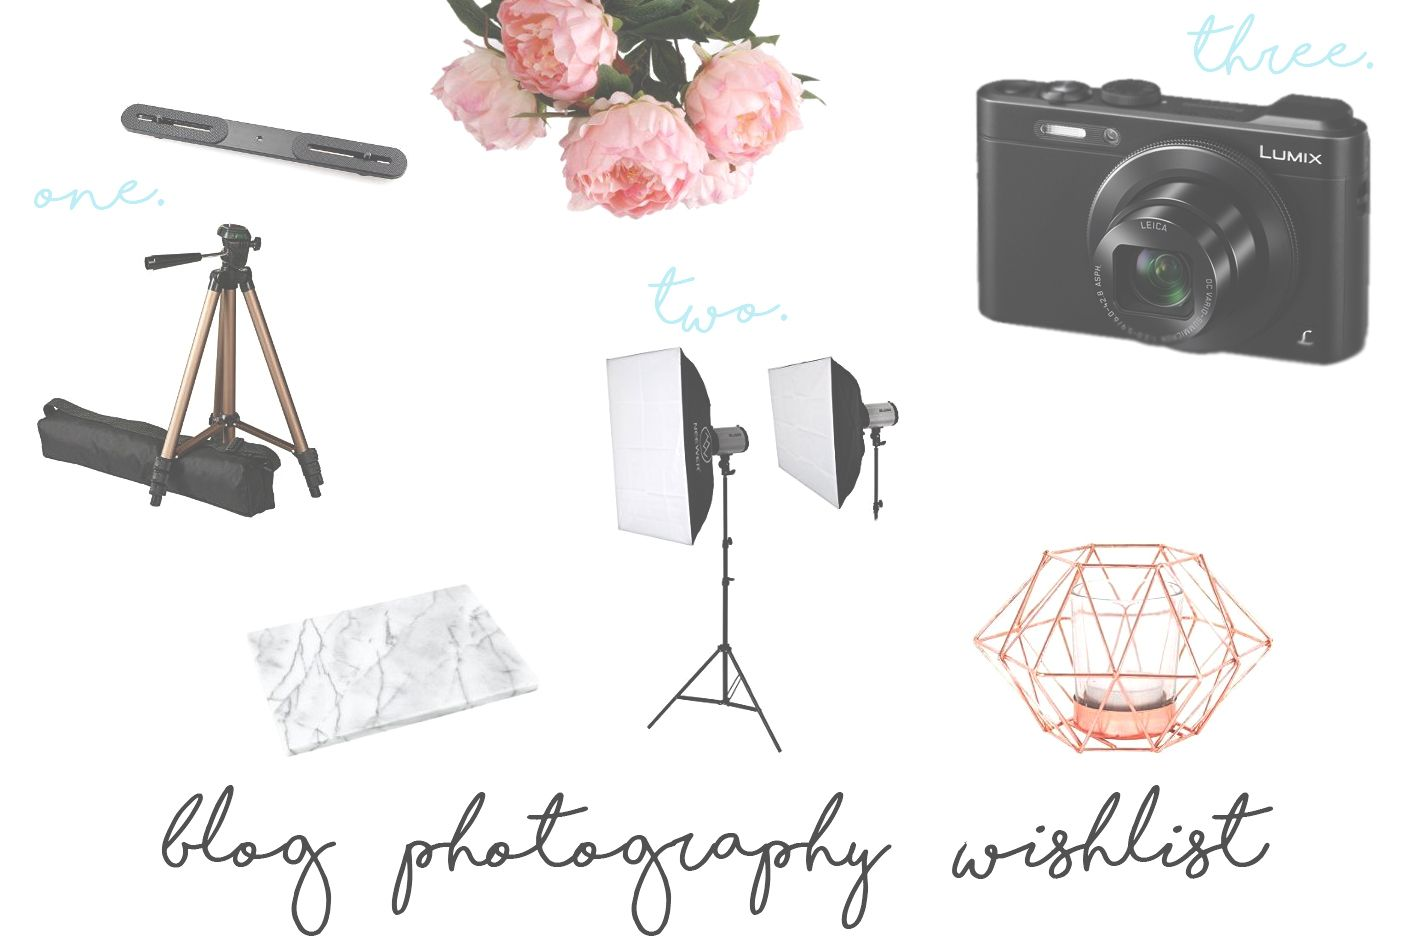 Call me a nerd, but I've been lusting over so much tech recently. Mainly photography based, it all stems from the fact that I am now spending every waking hour on my blog, and the desire to improve my